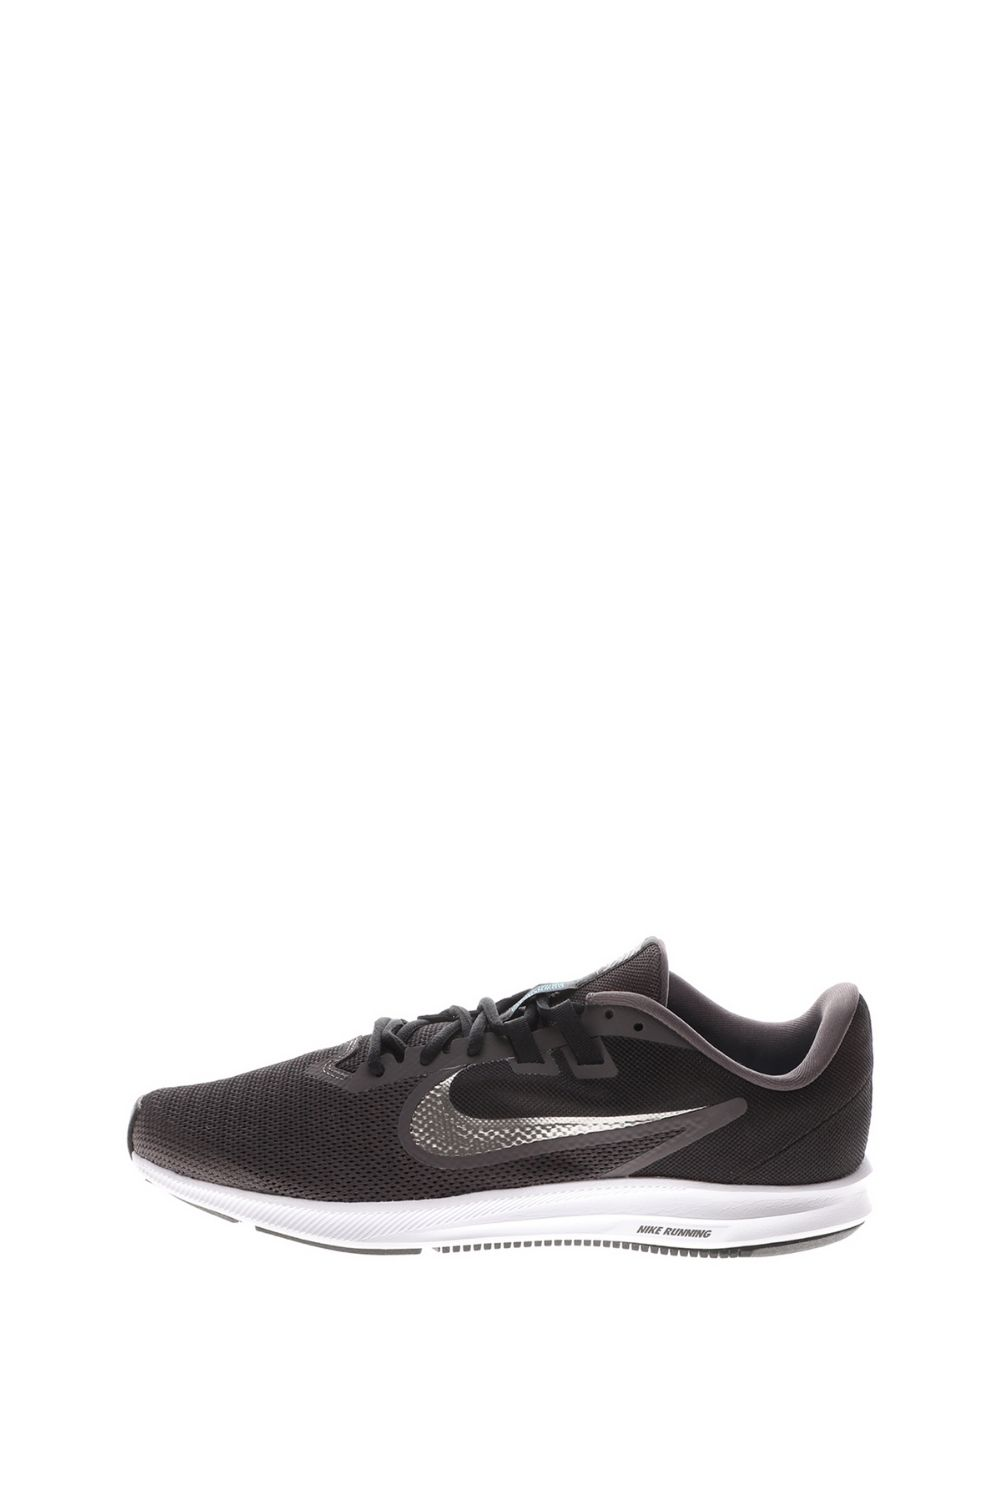 NIKE – Ανδρικά παπούτσια running NIKE DOWNSHIFTER 9 μαύρα